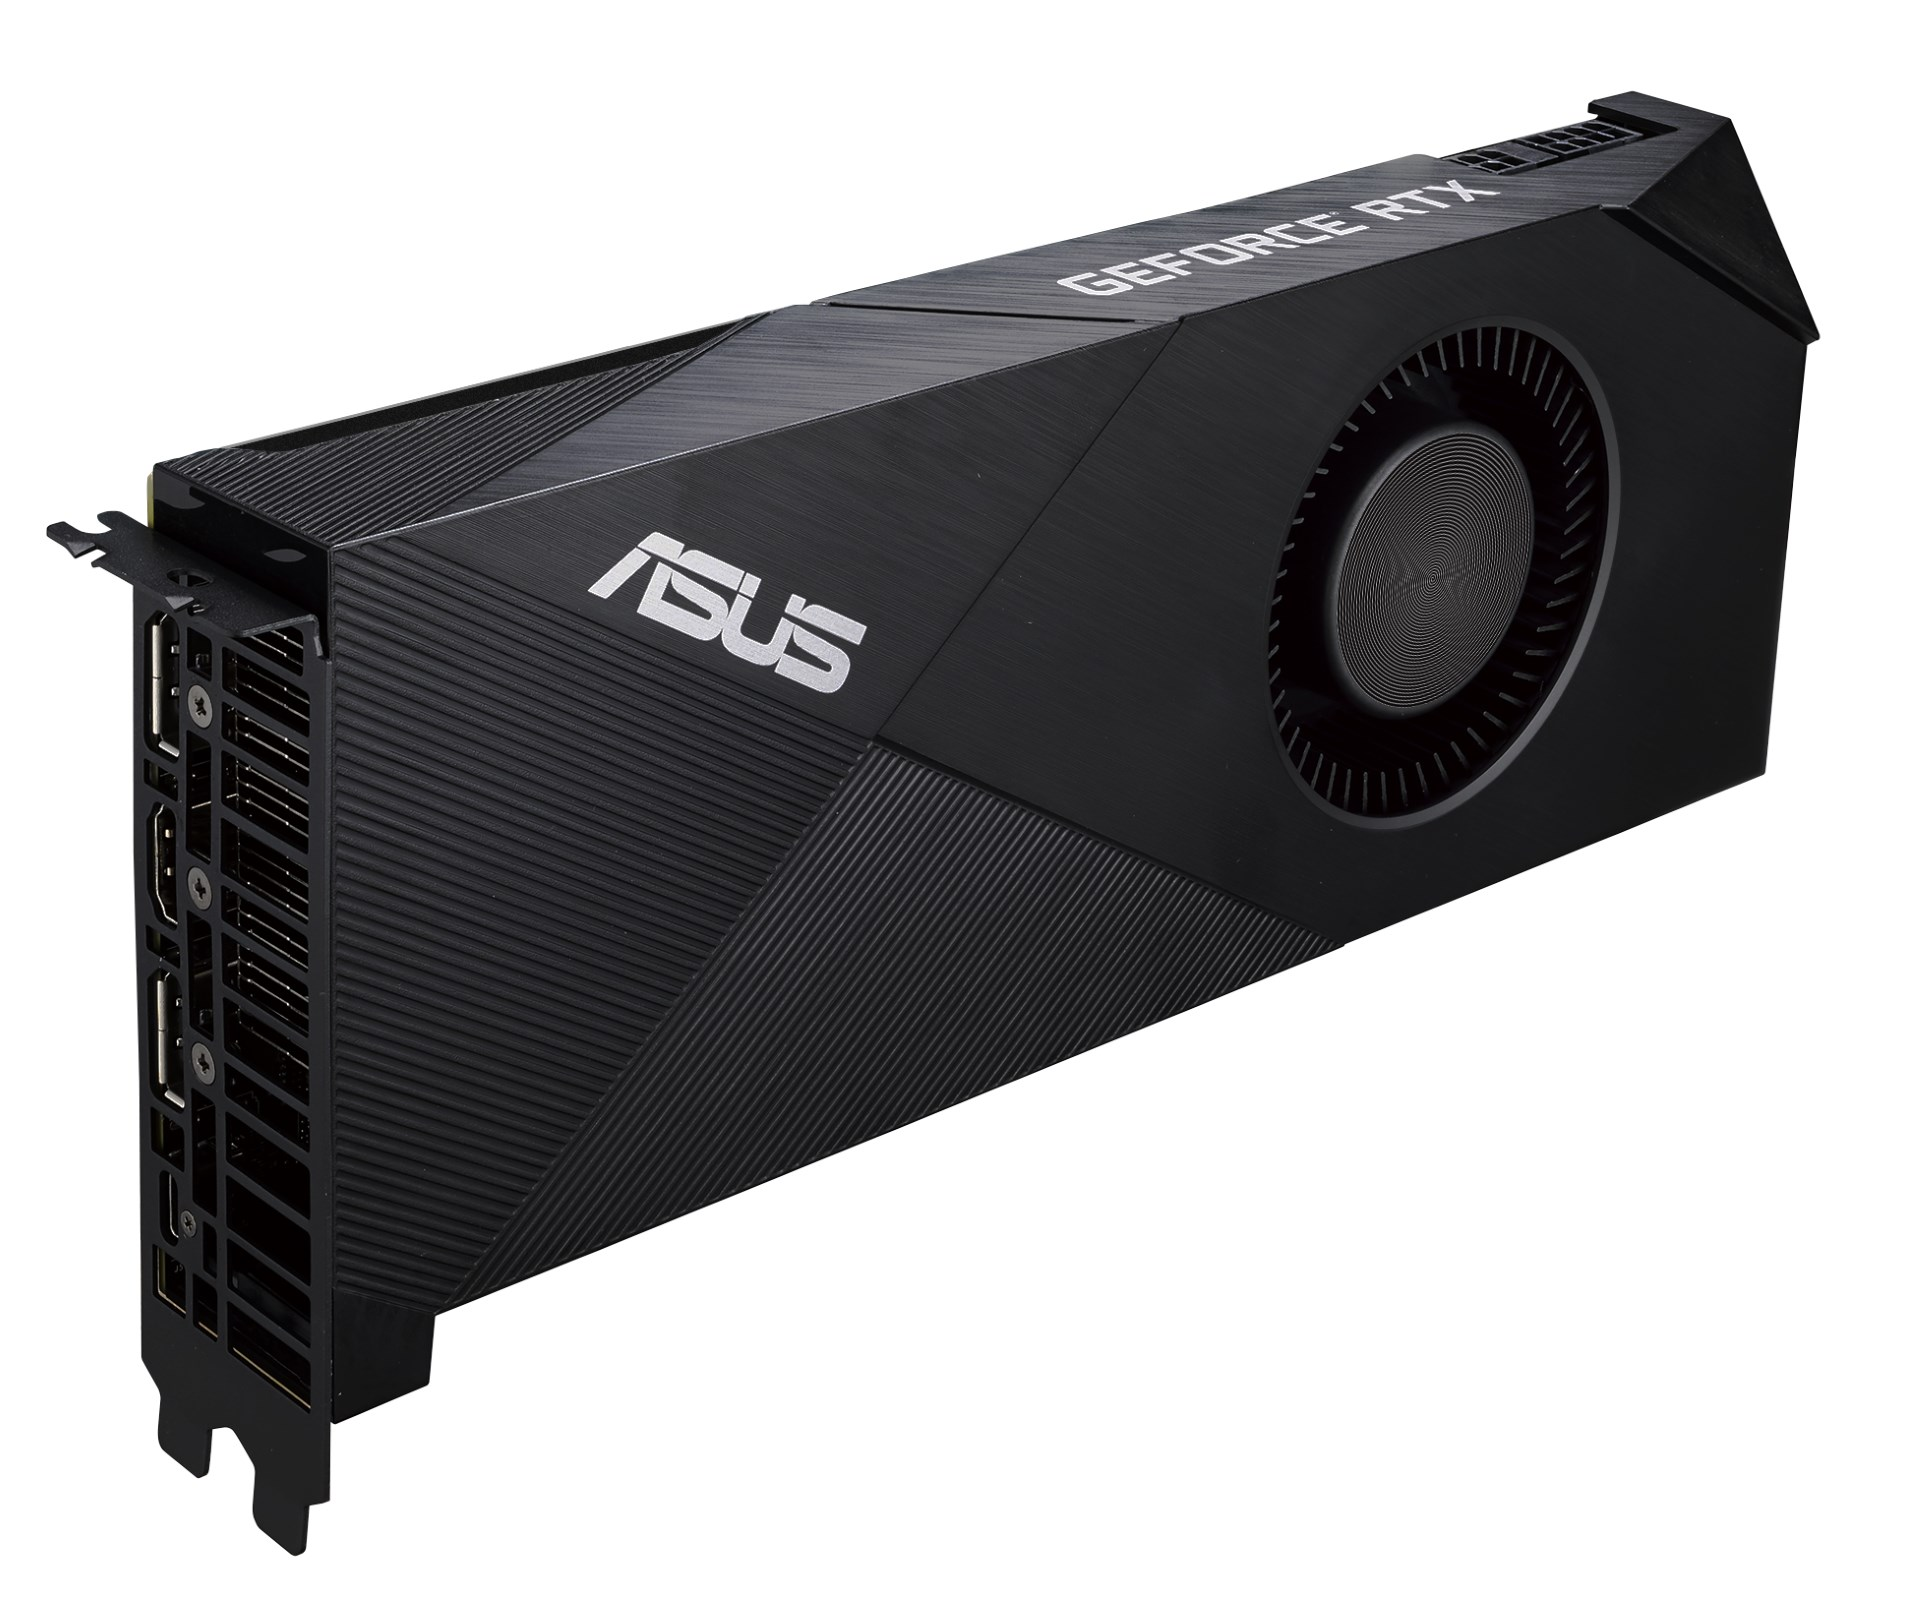 ASUS представила видеокарты ROG Strix GeForce RTX 2070, Dual и Turbo